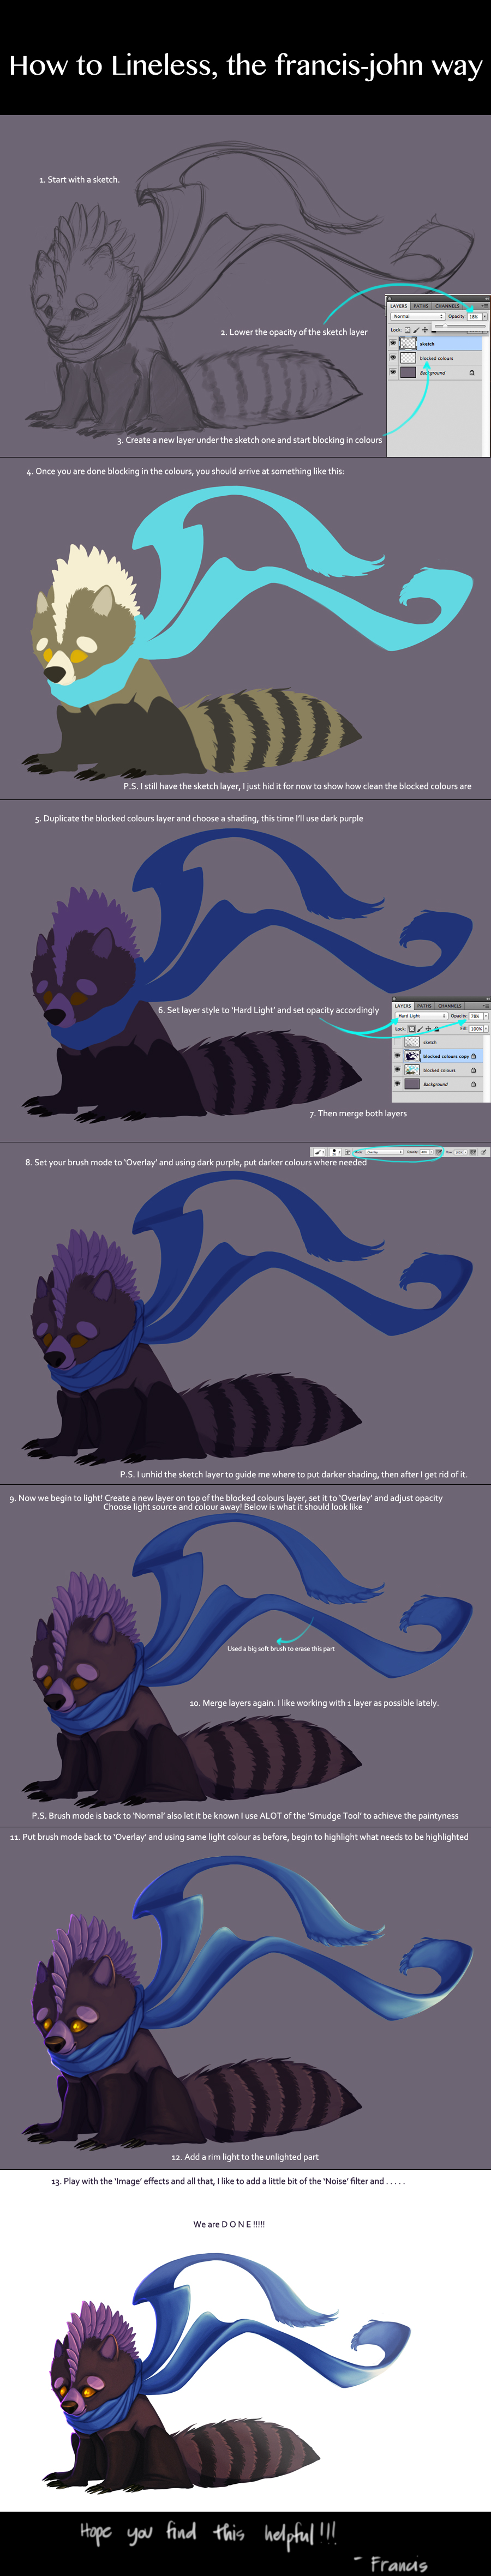 How to Lineless by francis-john